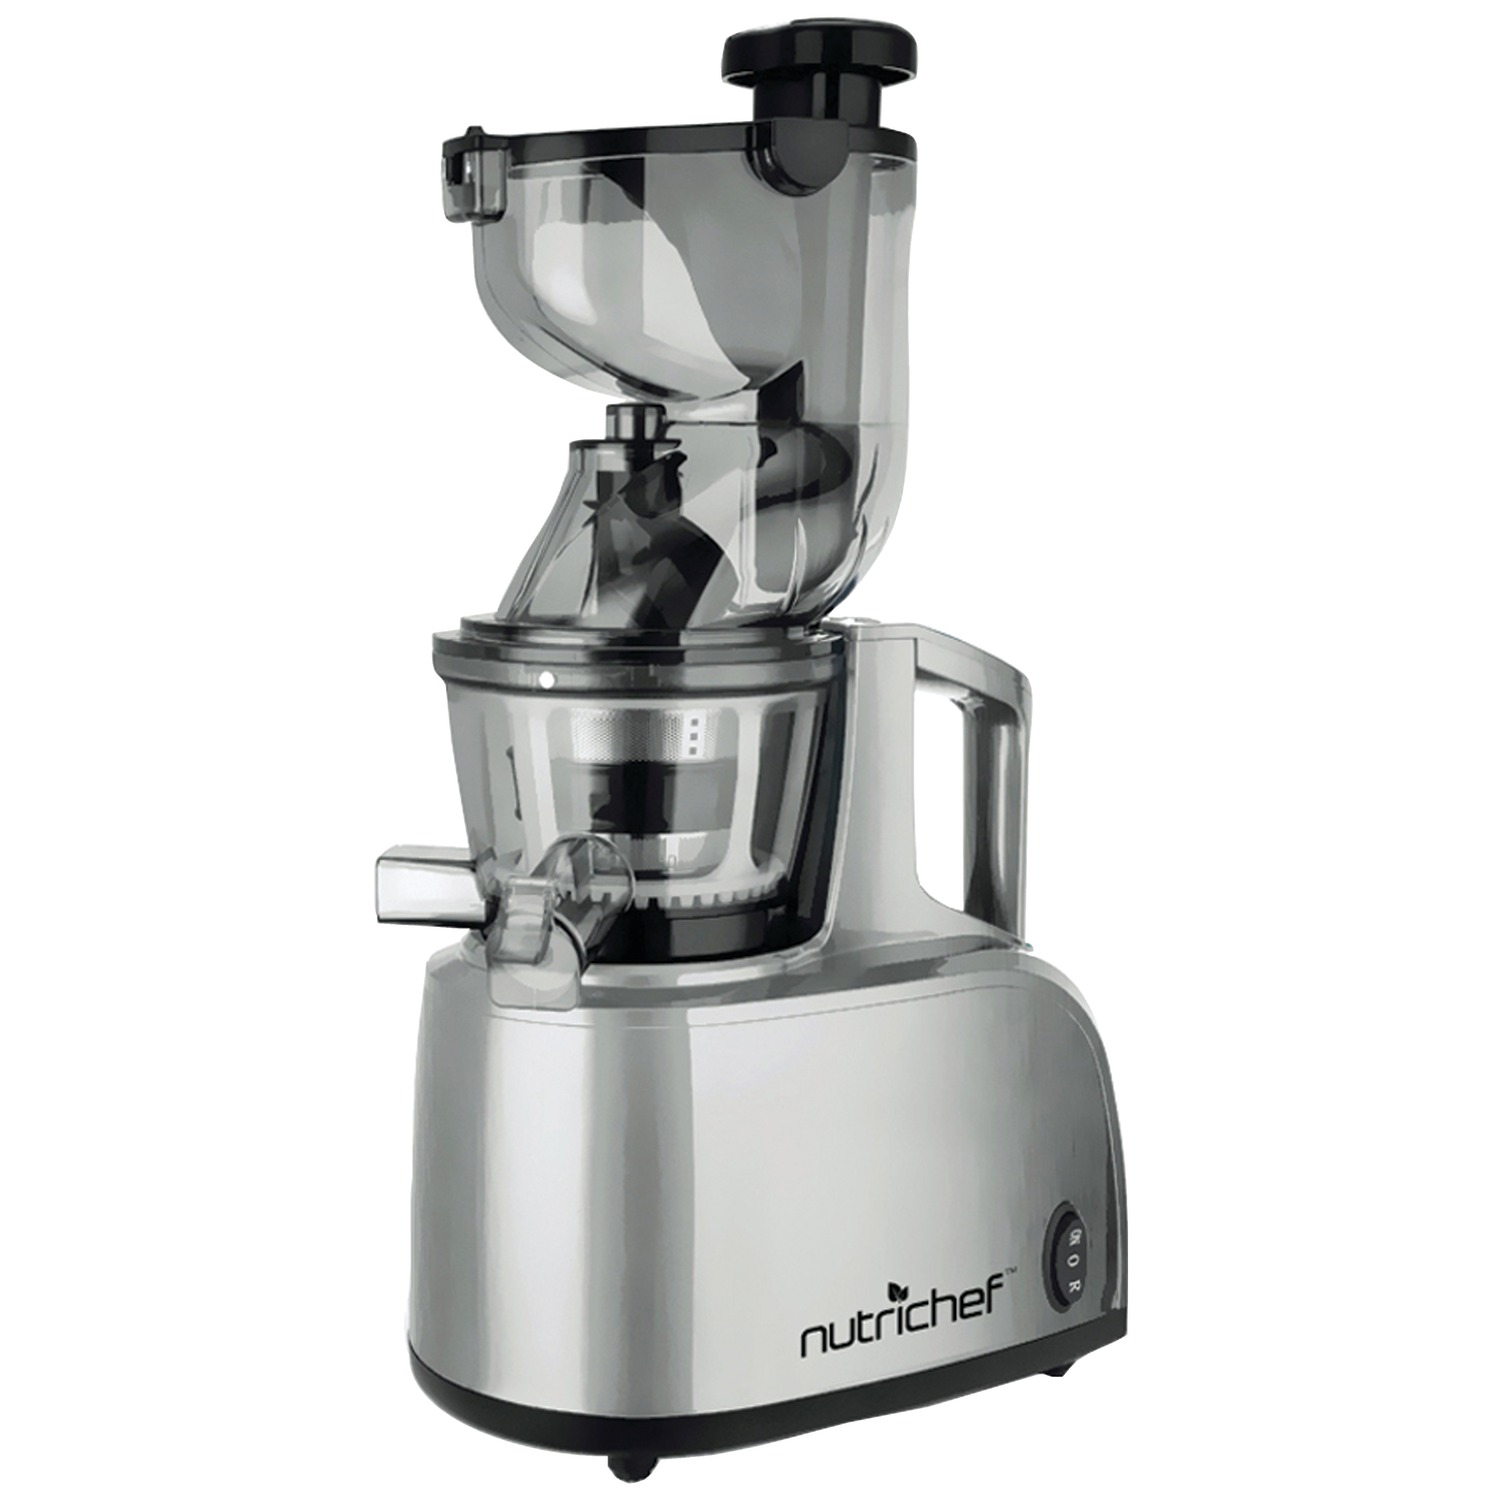 NUTRICHEF PKSJ40 Countertop Masticating Slow Juicer & Drink Maker